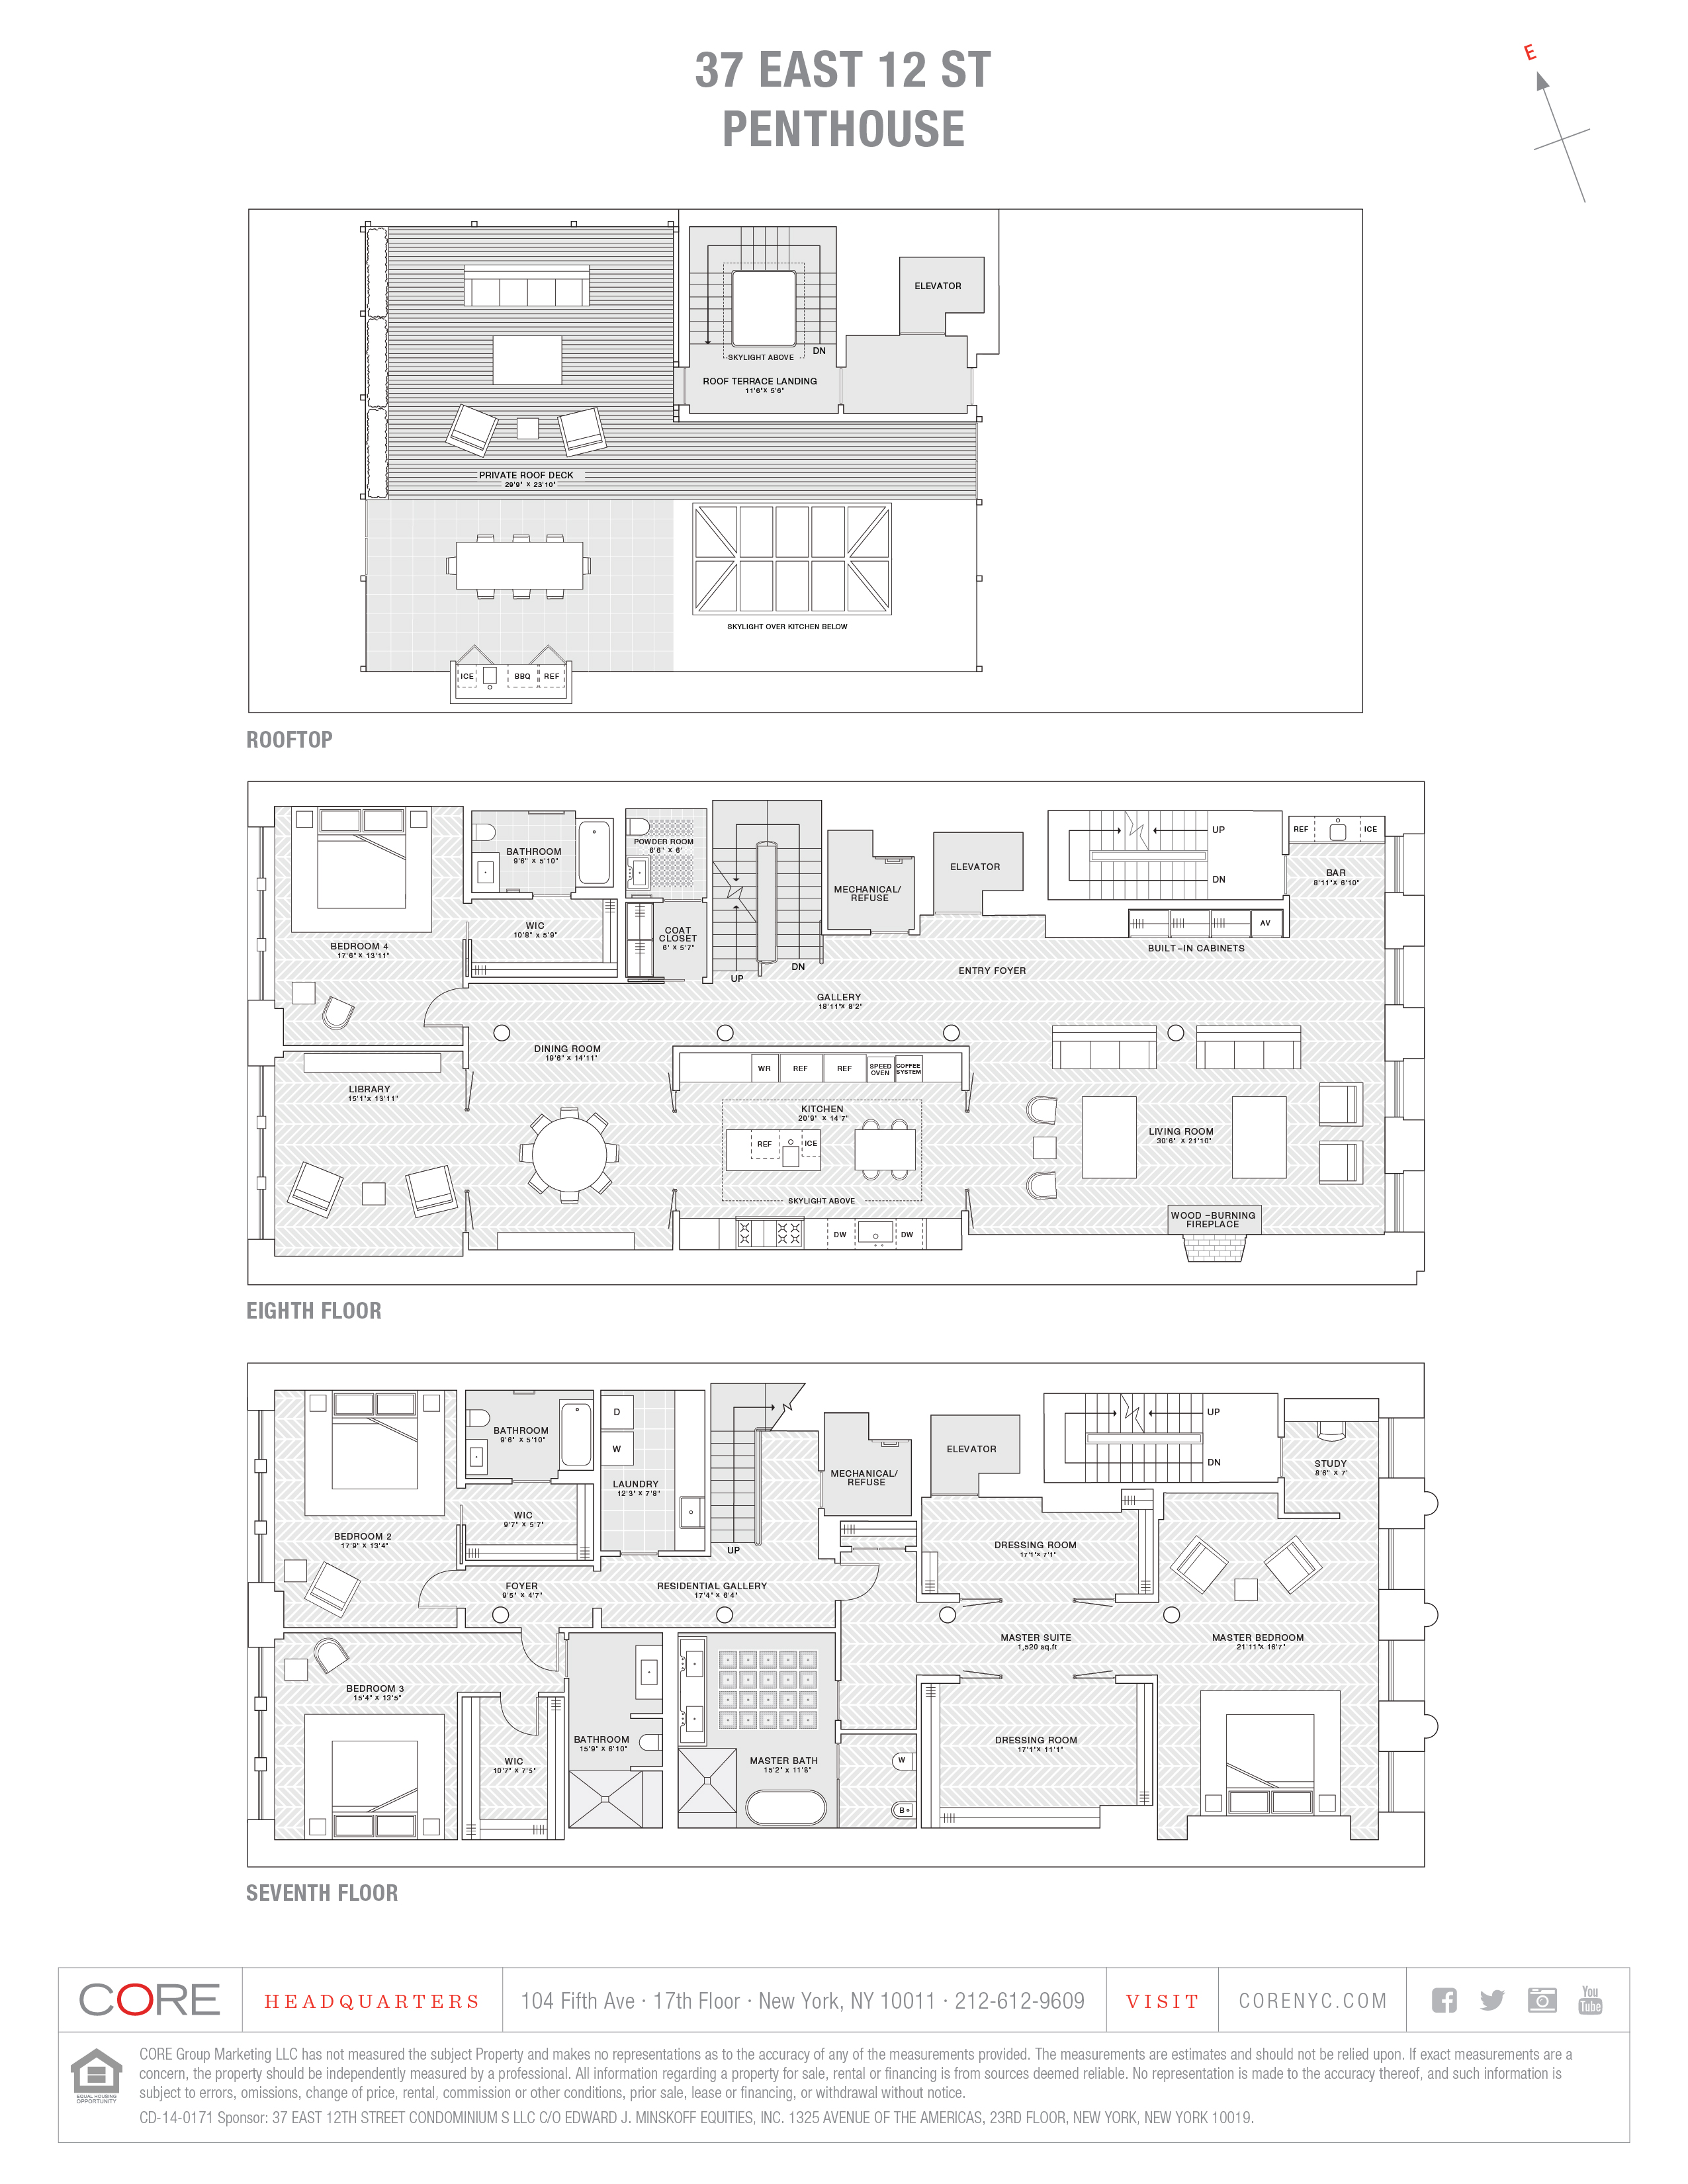 37 East 12th St. Penthouse, New York, NY 10003